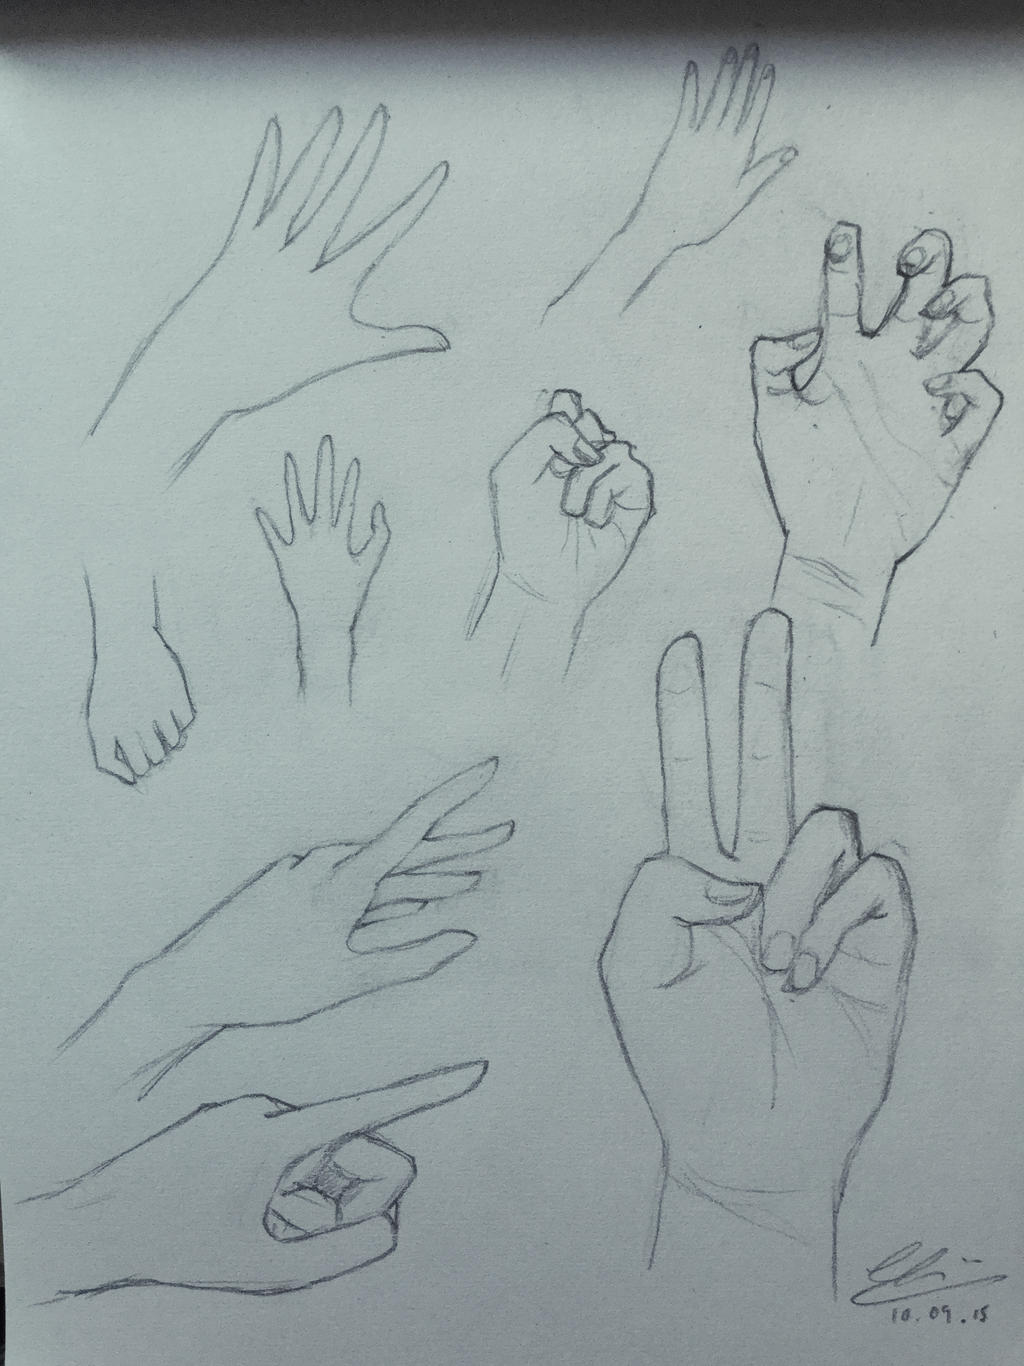 Sketches of hands in various poses by painting music